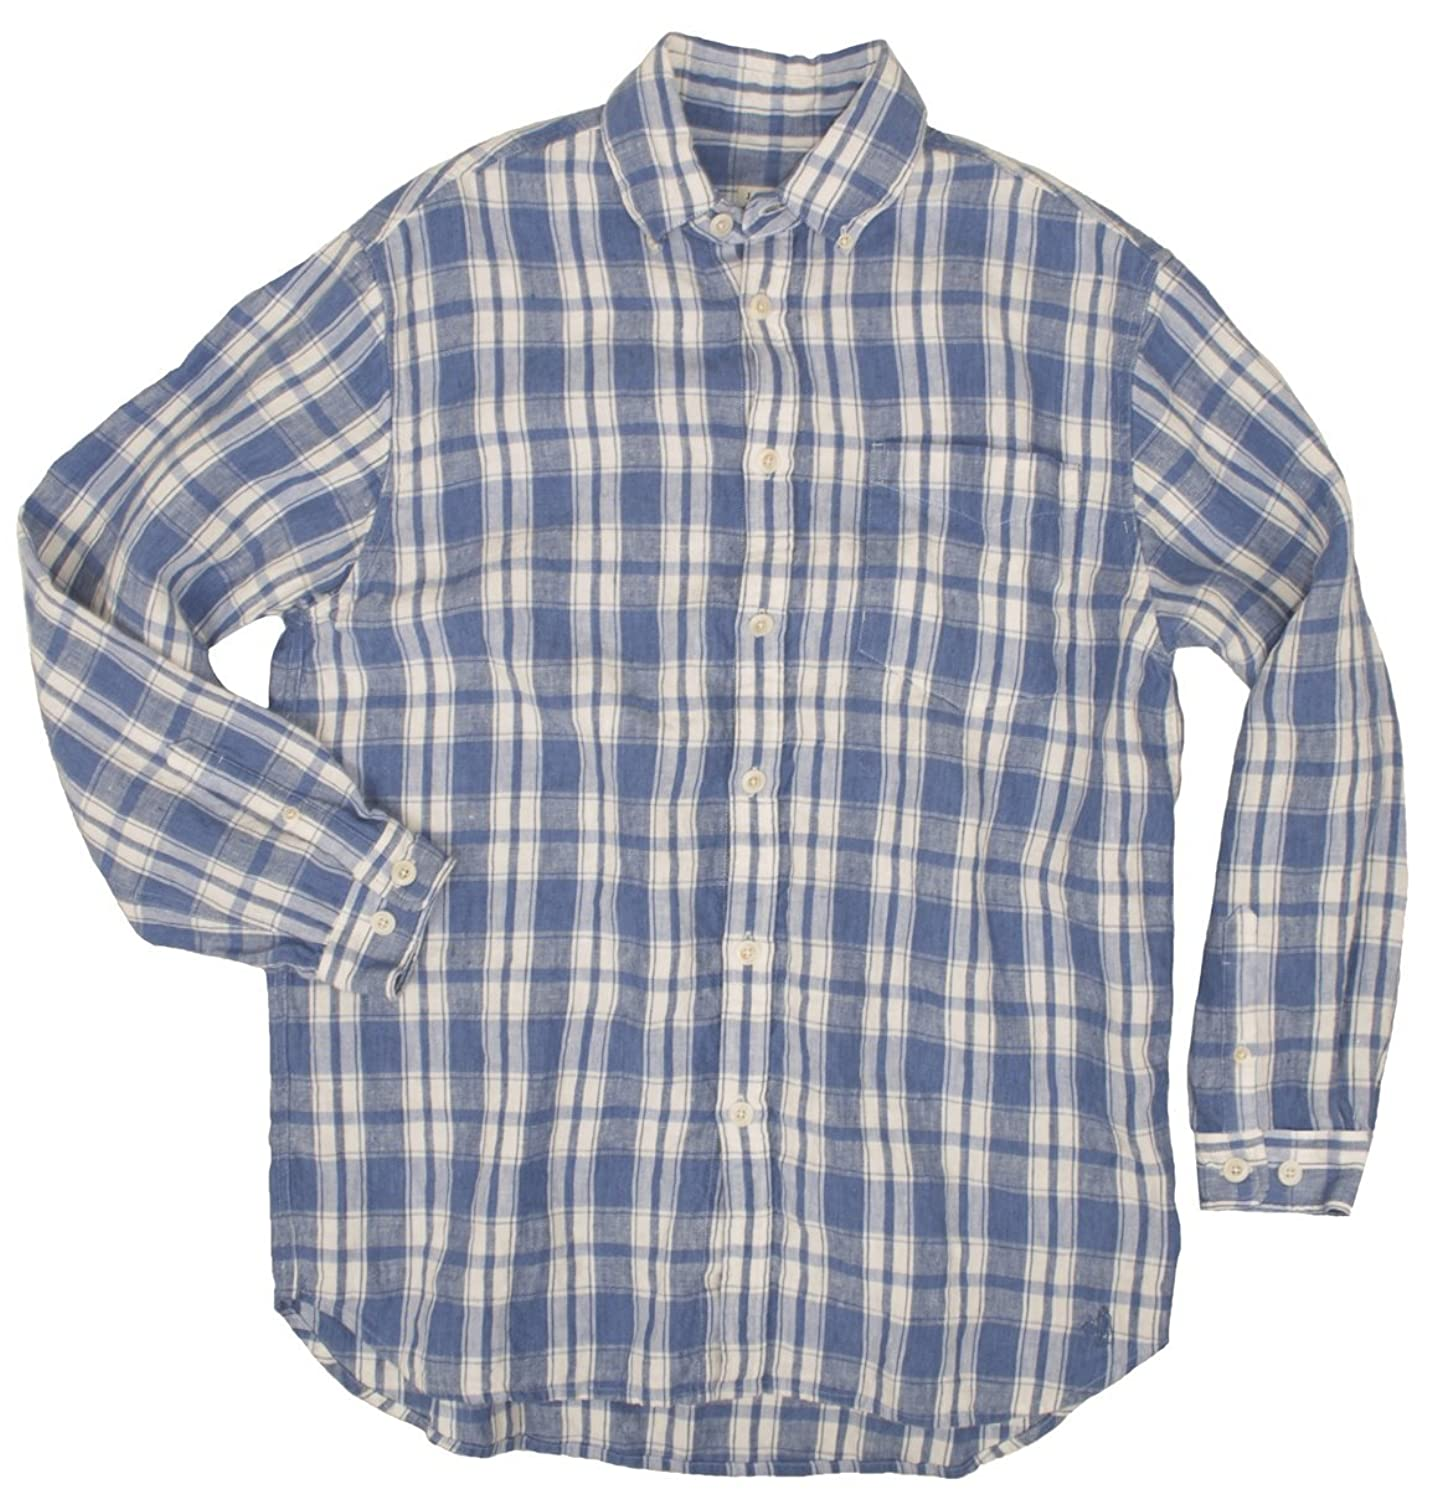 Edwardian Men's Shirts & Sweaters Frontier Linen Plaid Shirt $159.85 AT vintagedancer.com